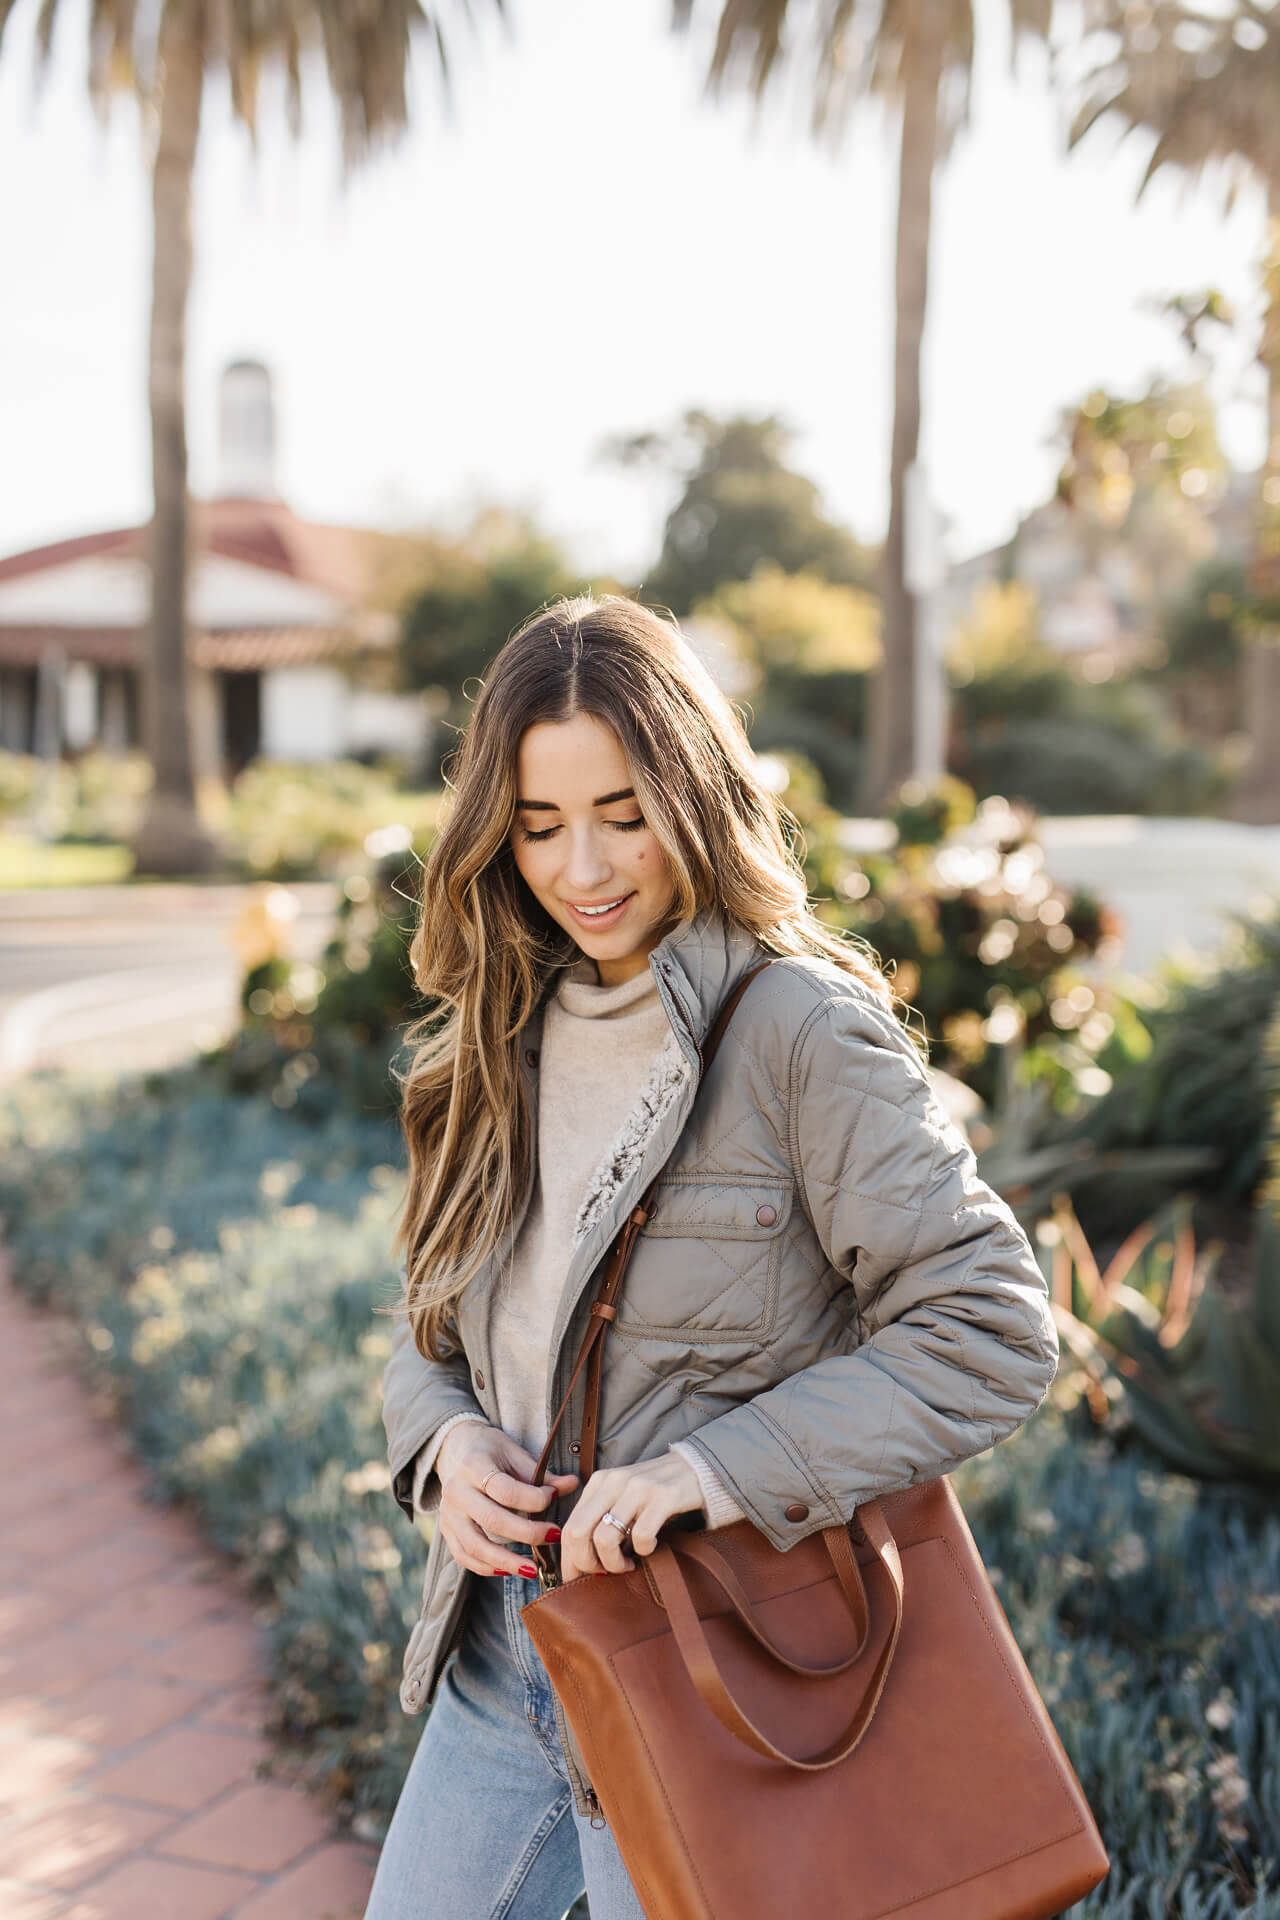 The Madewell Transport Bag in English Saddle! - M Loves M @marmar